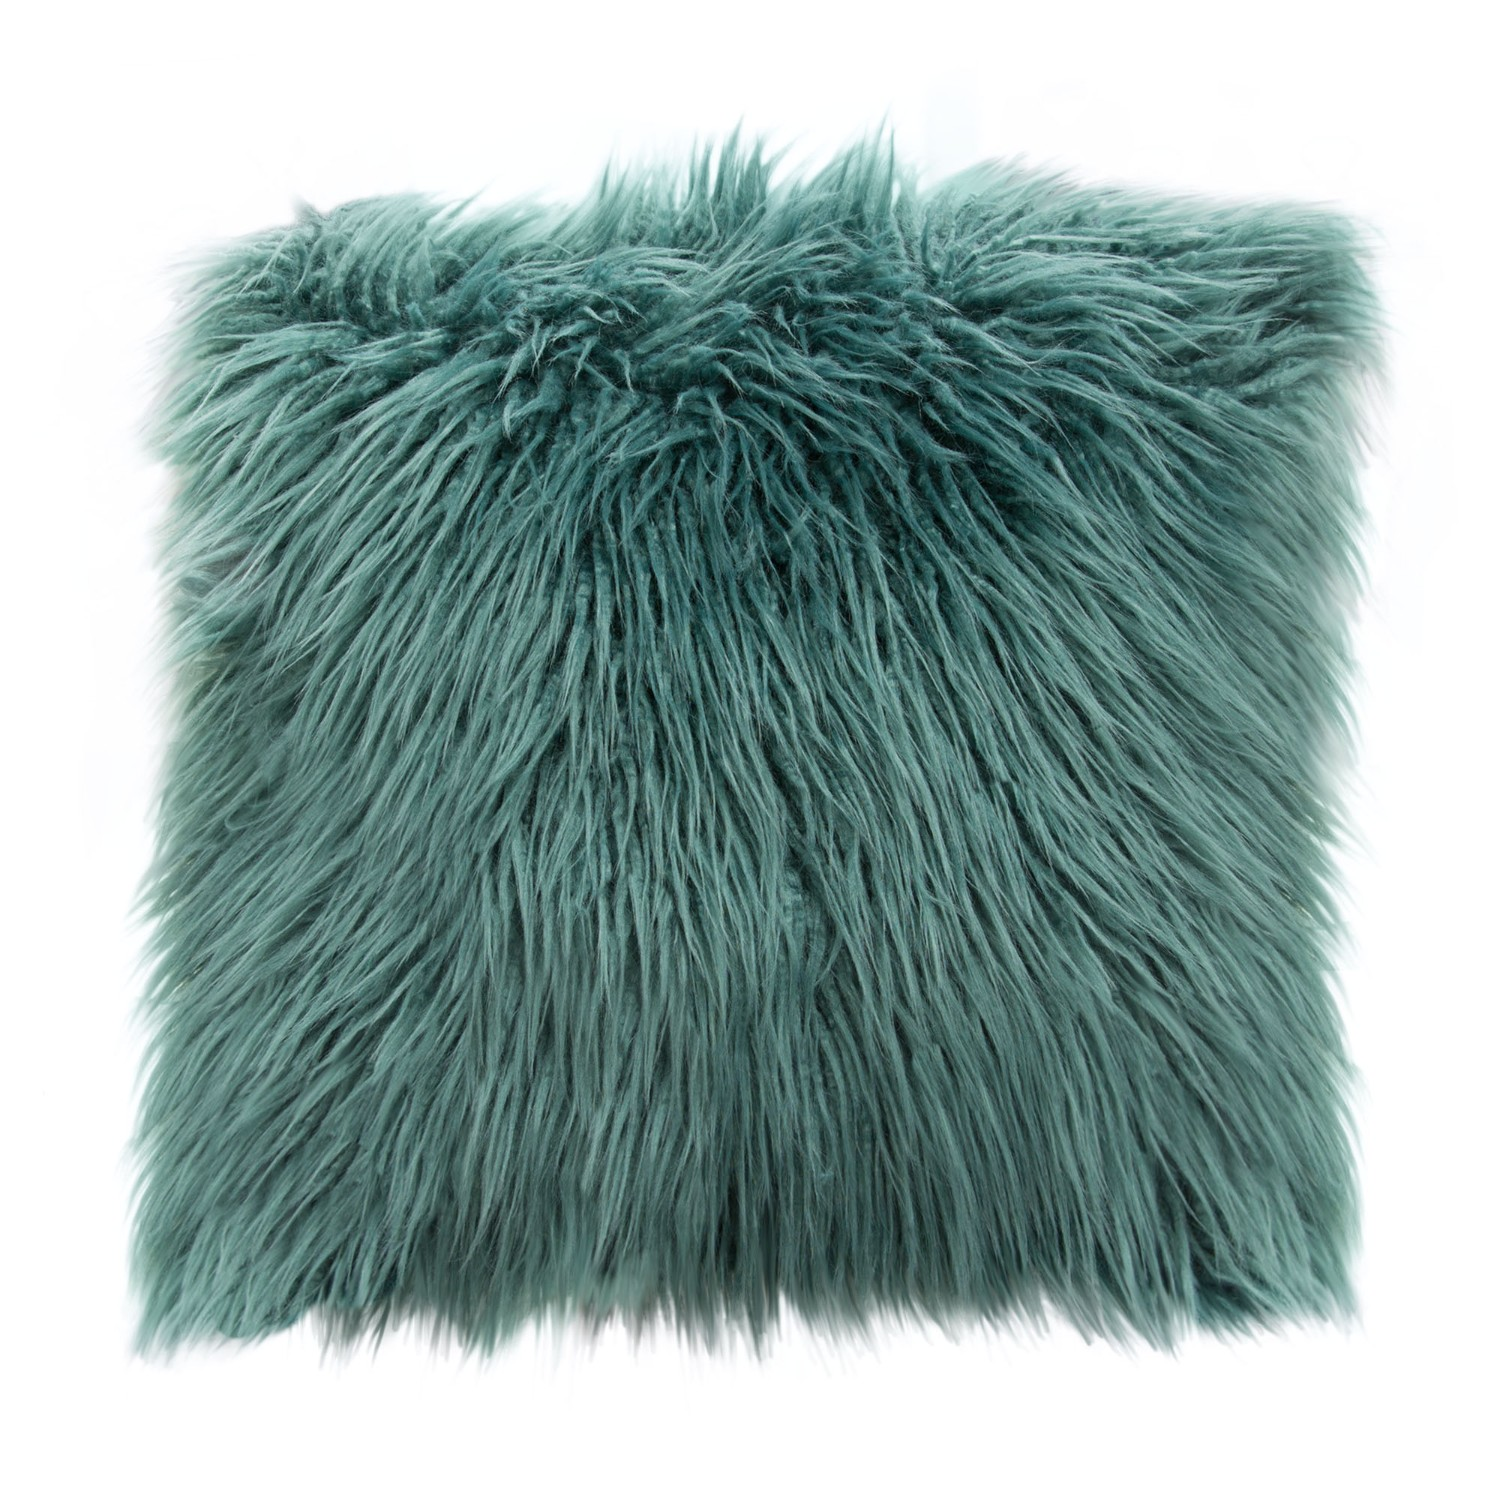 Diamond Sofa Dual-Sided Faux Fur Square Accent Pillow in Teal Ombre - 18""